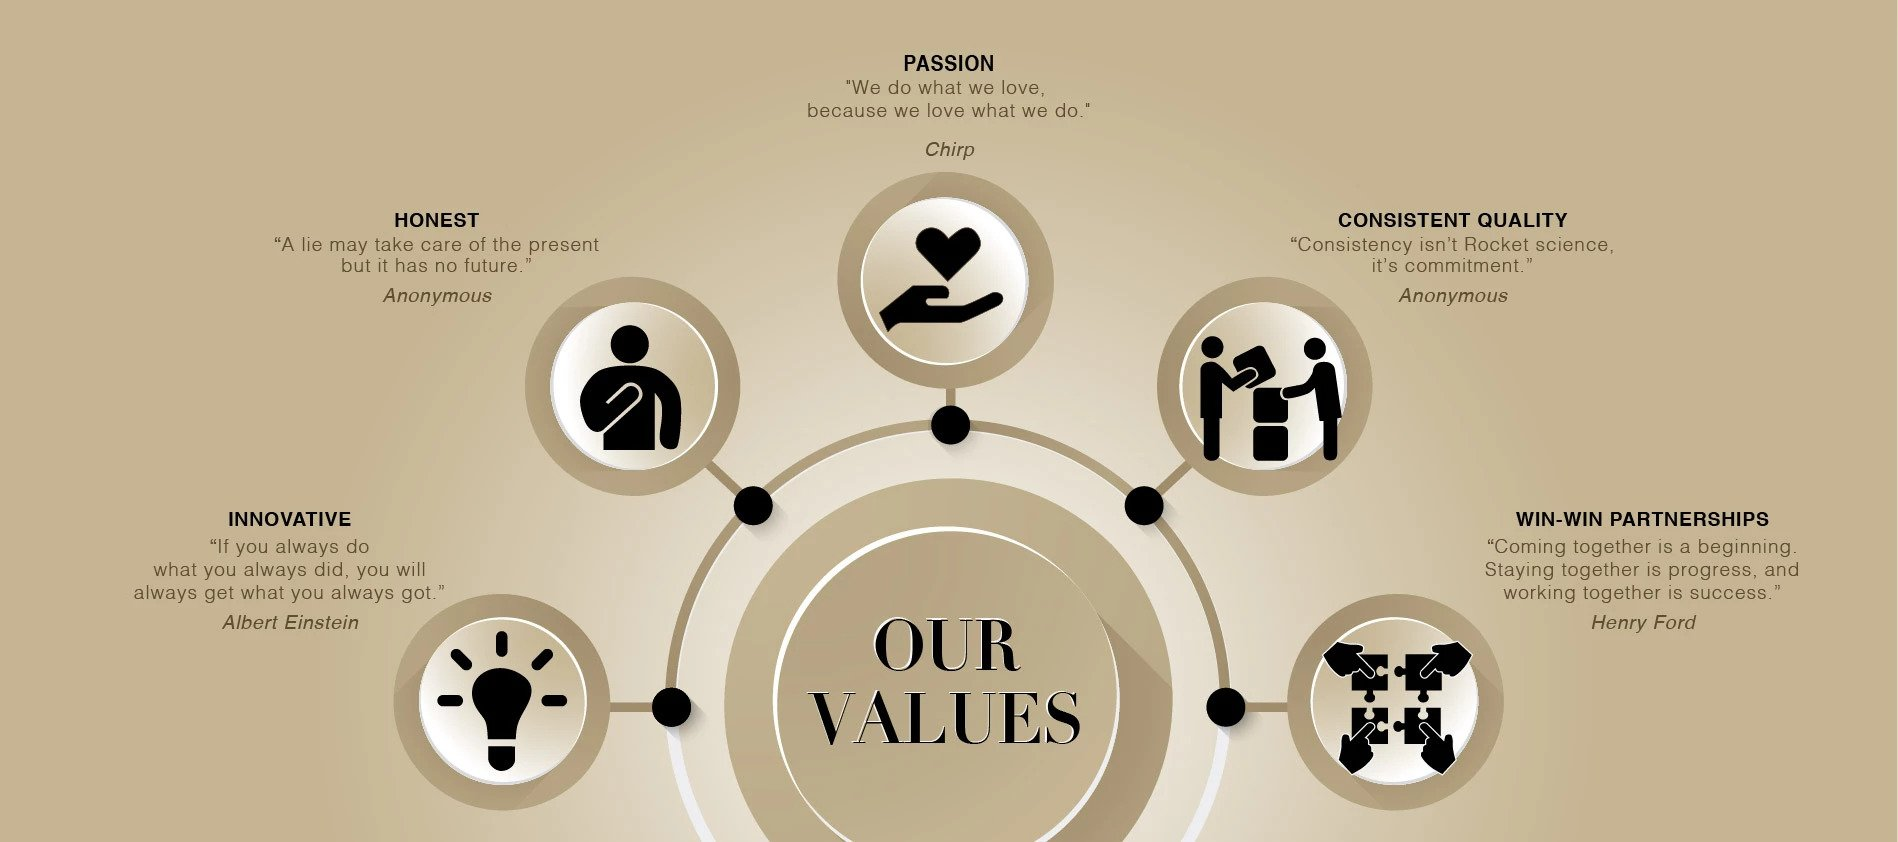 ChirpNation company values - about ChirpNation